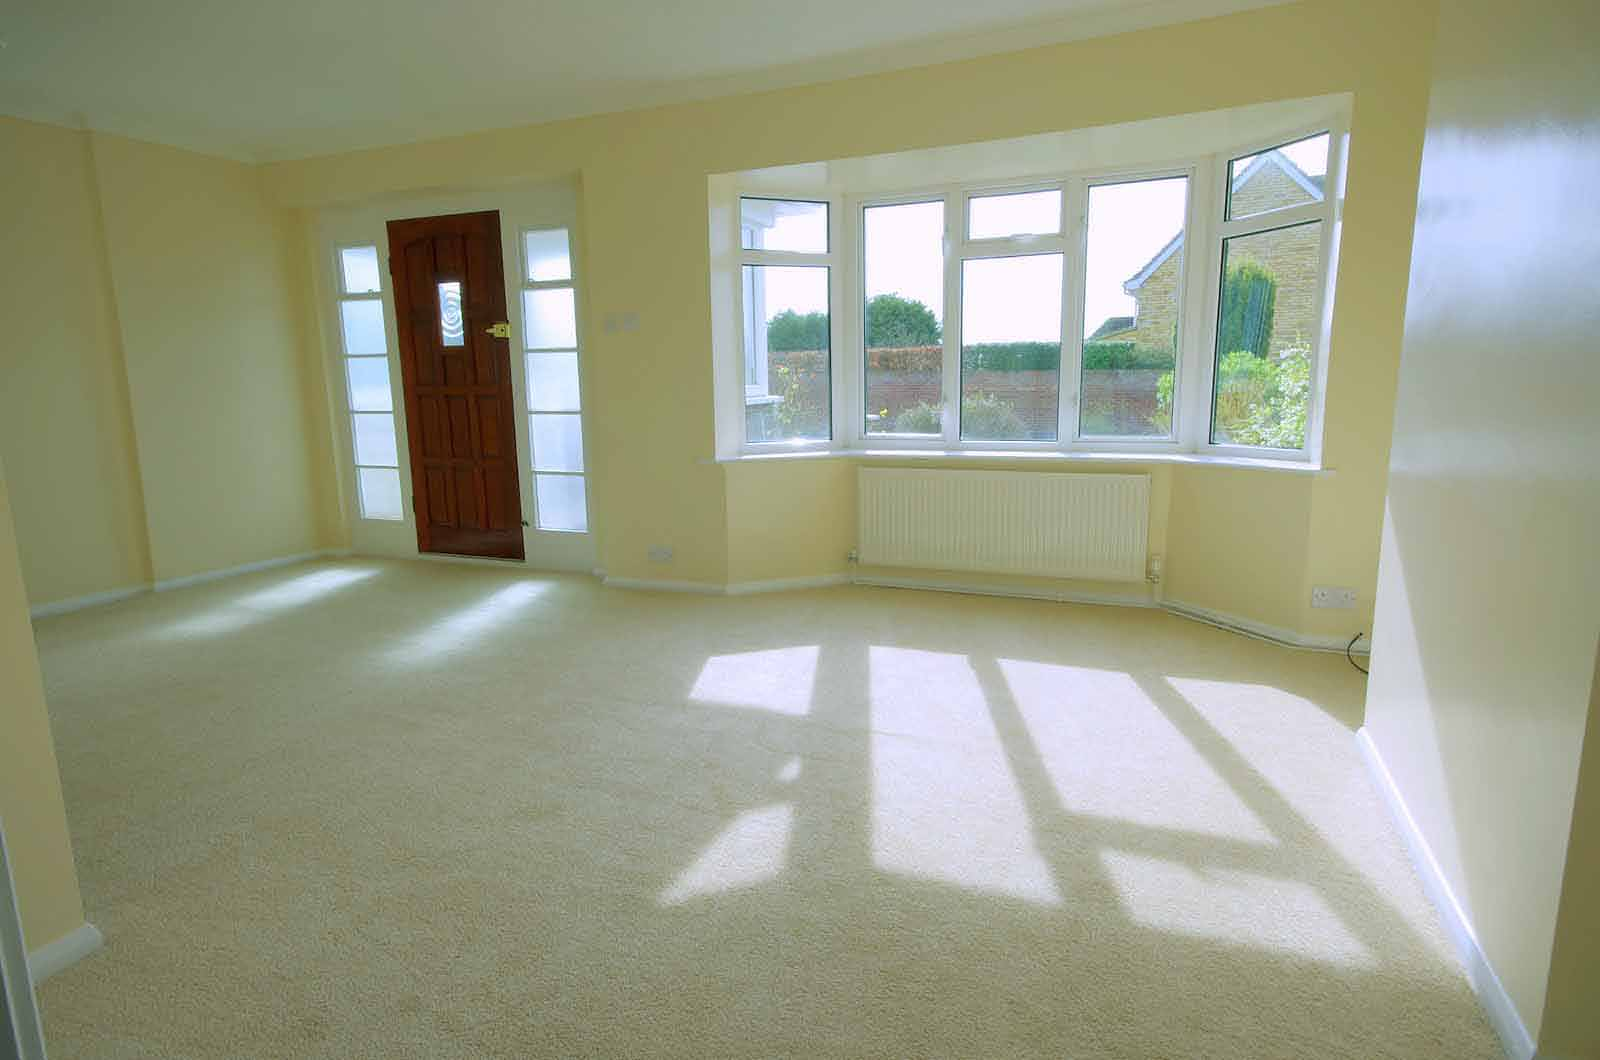 3 bed house semi detached to rent elderfield road 3 bedroom house for rent in langley slough 3 bed house for sale in slough